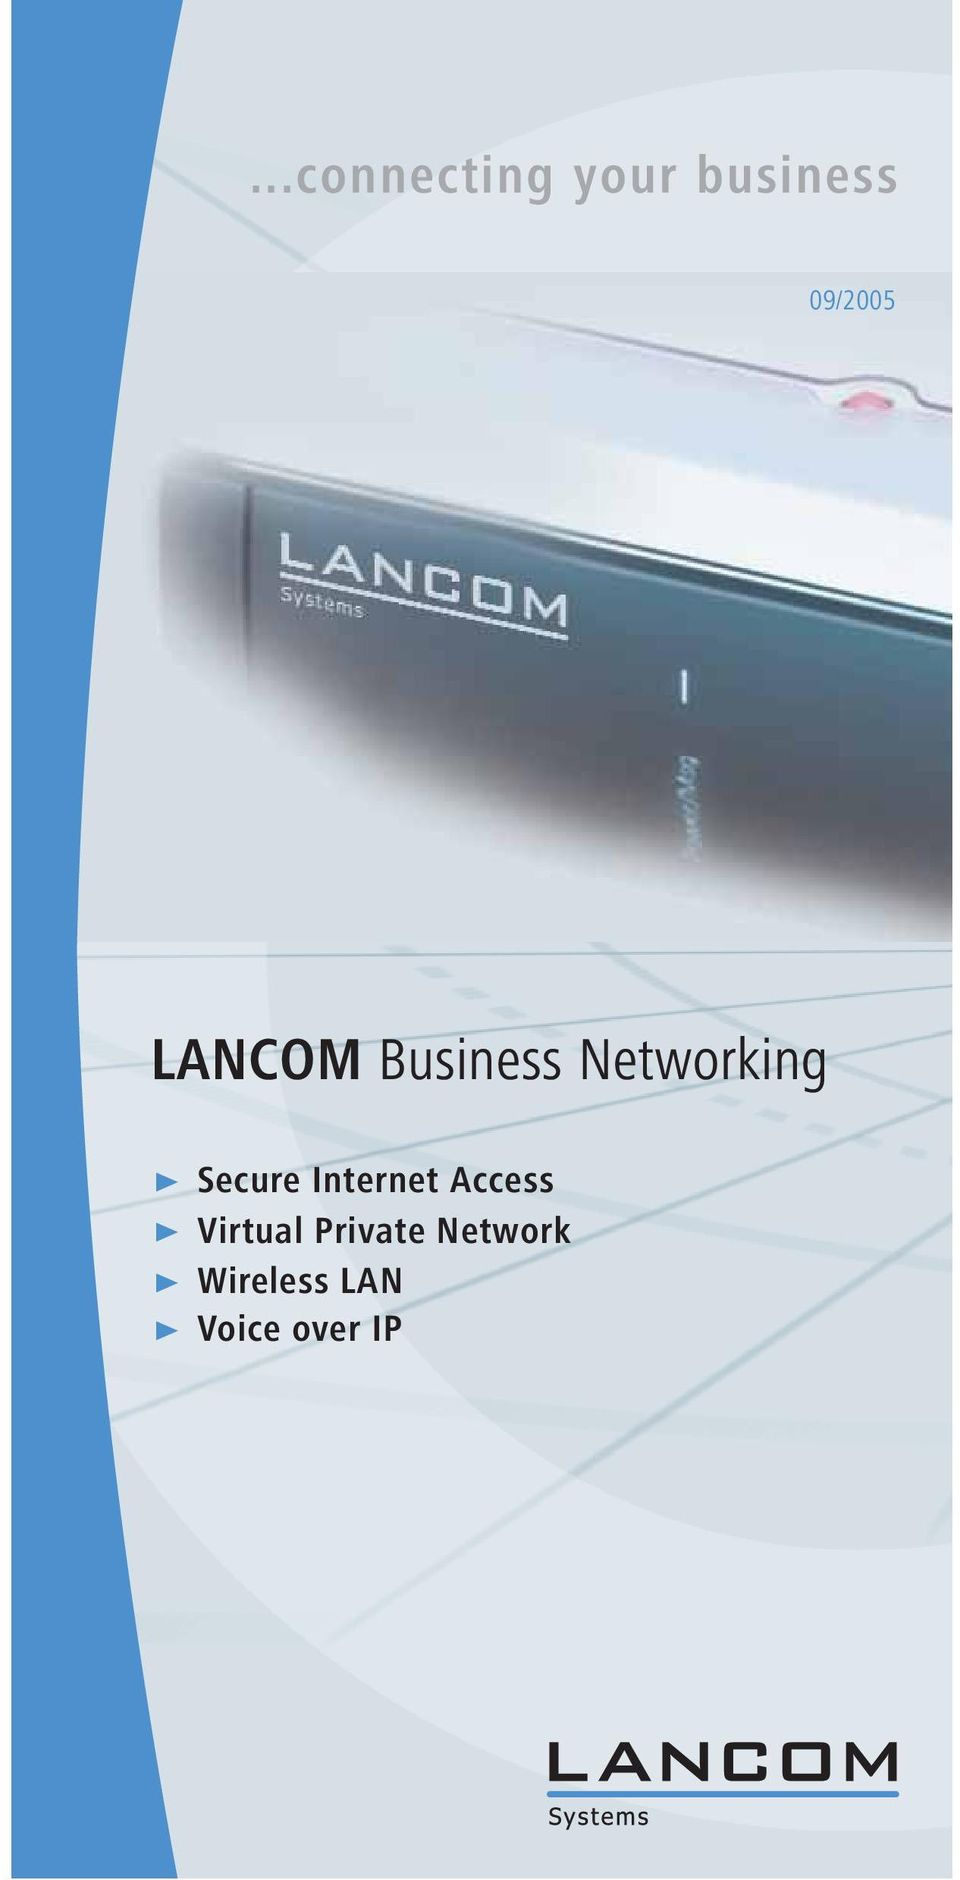 Networking Secure Internet Access